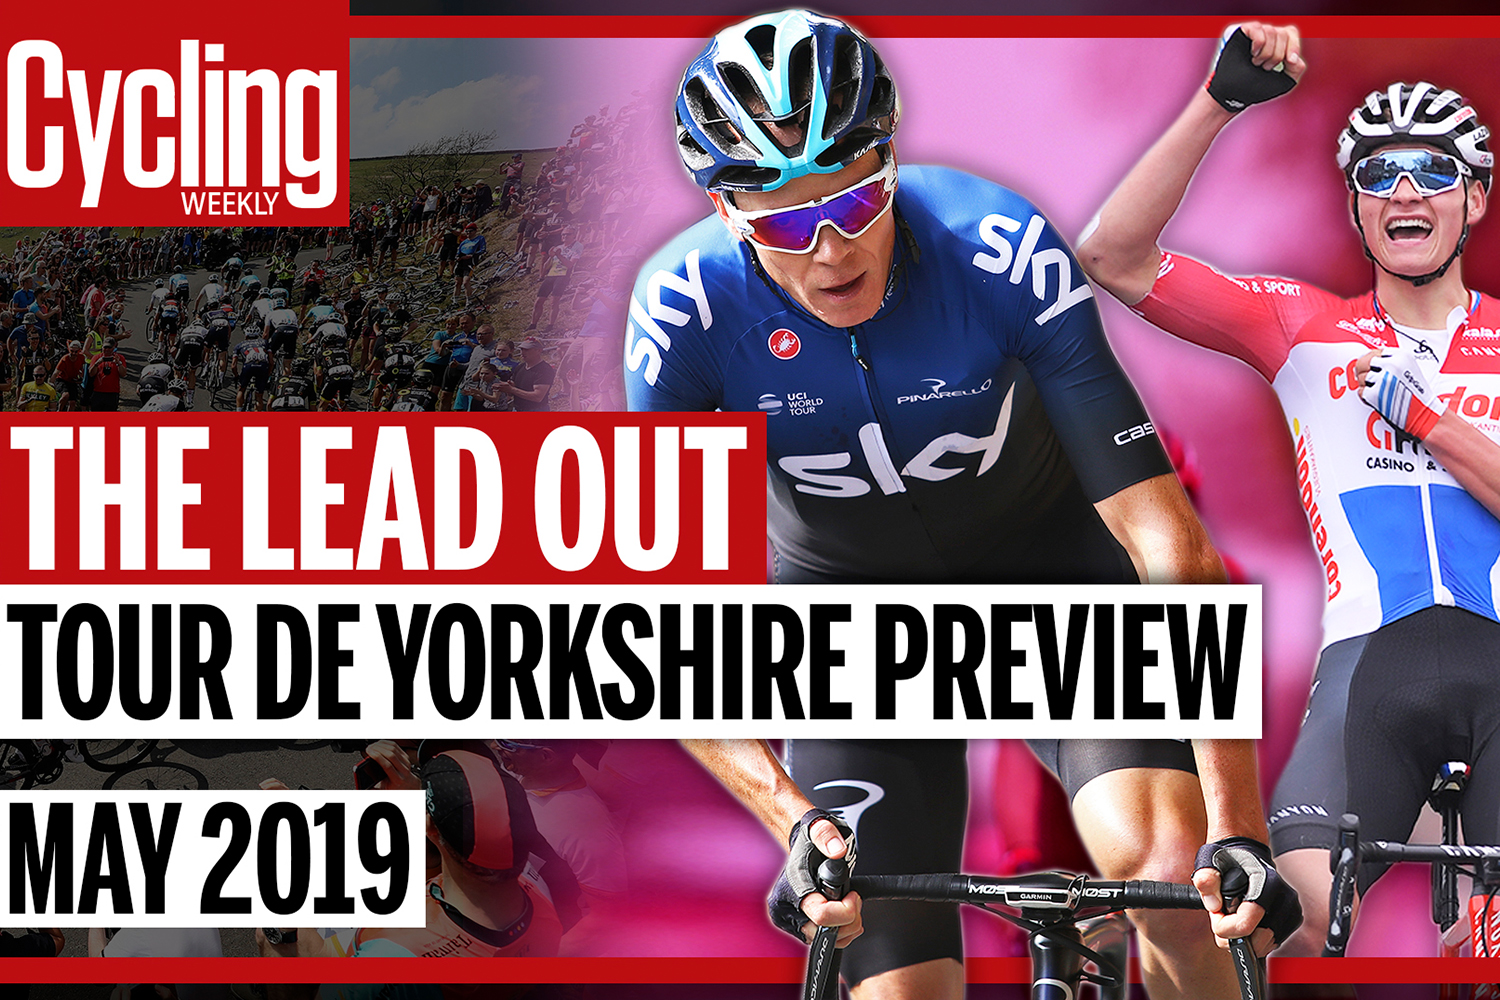 The Lead Out: May 2019 – Tour de Yorkshire preview